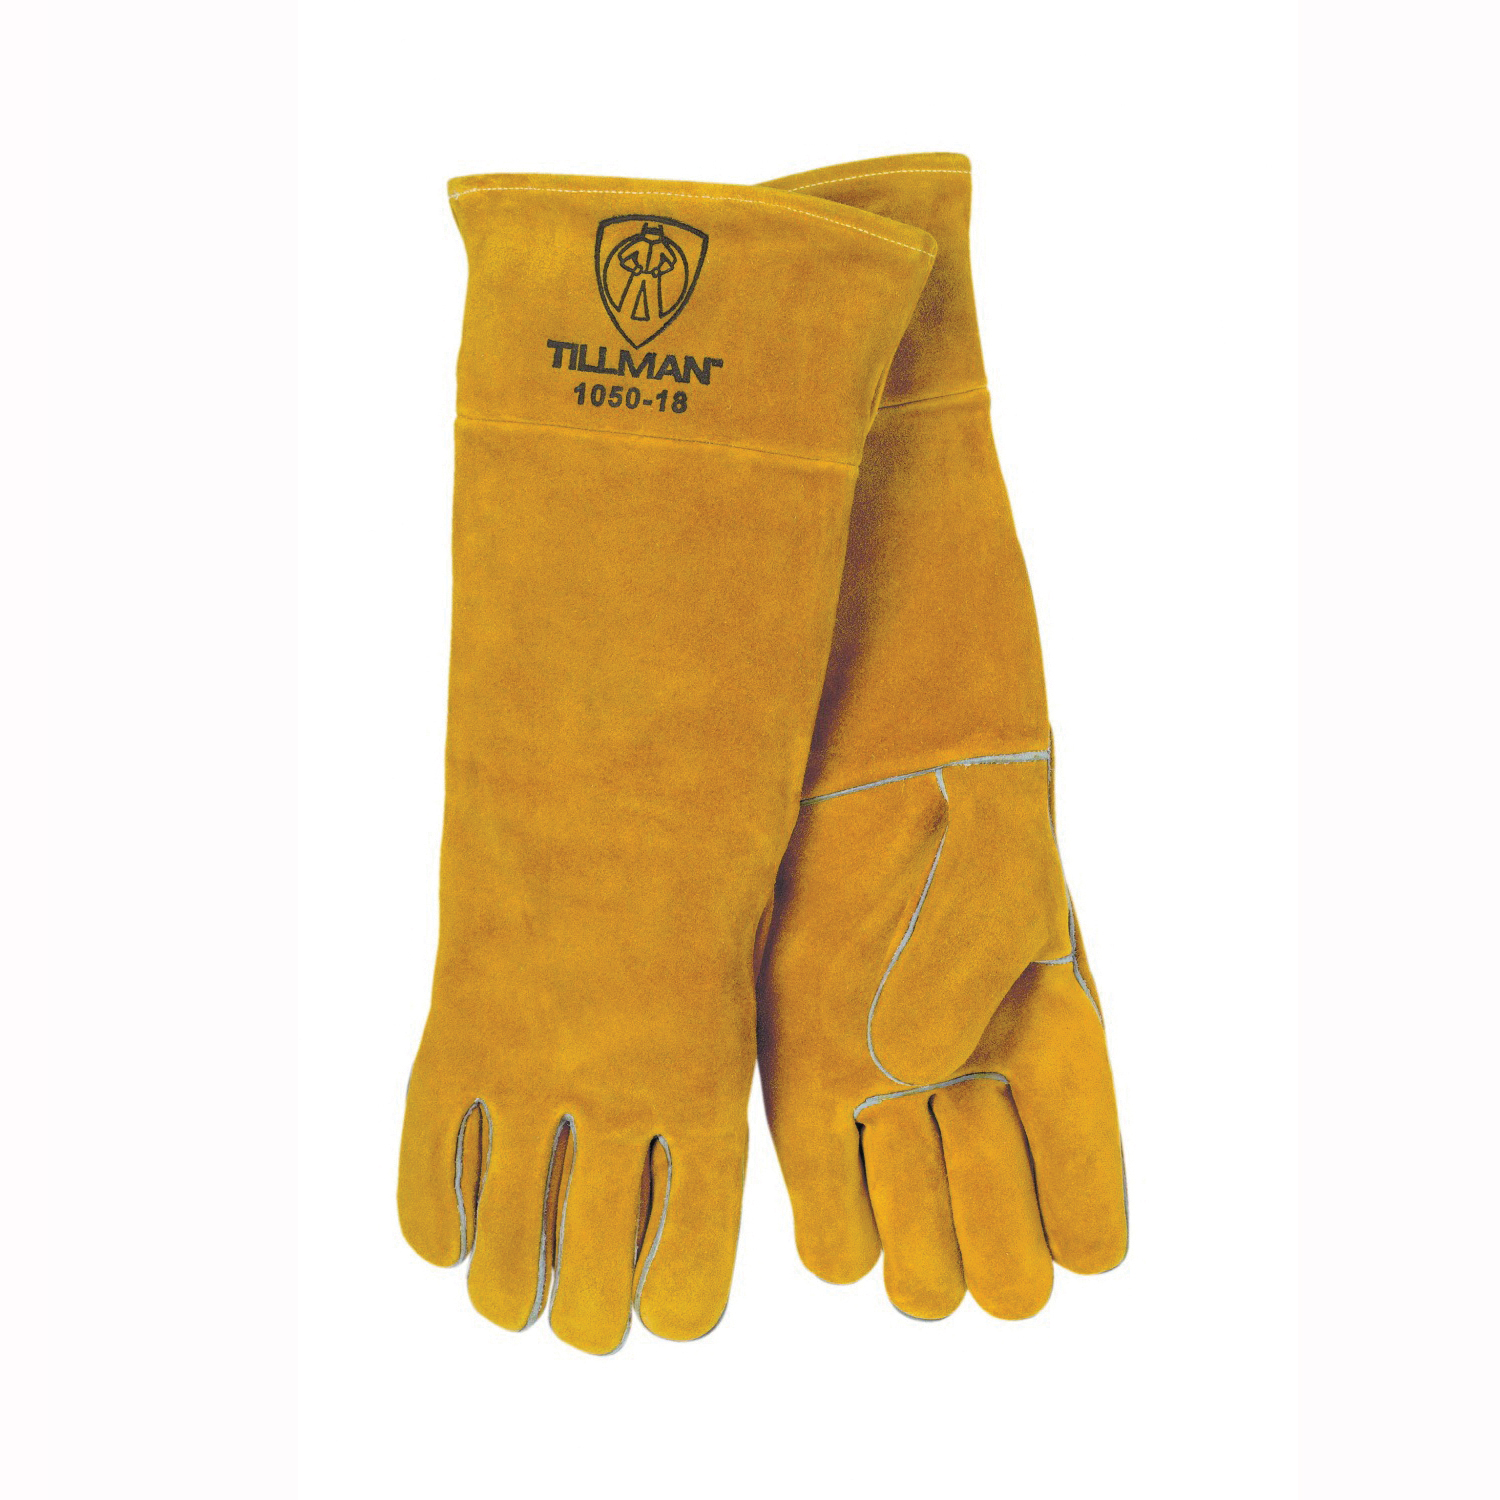 Tillman™ 1015-L Stick Welding Gloves, L, Shoulder Split Cowhide Leather, Blue, Cotton/Foam Lining, 14 in L